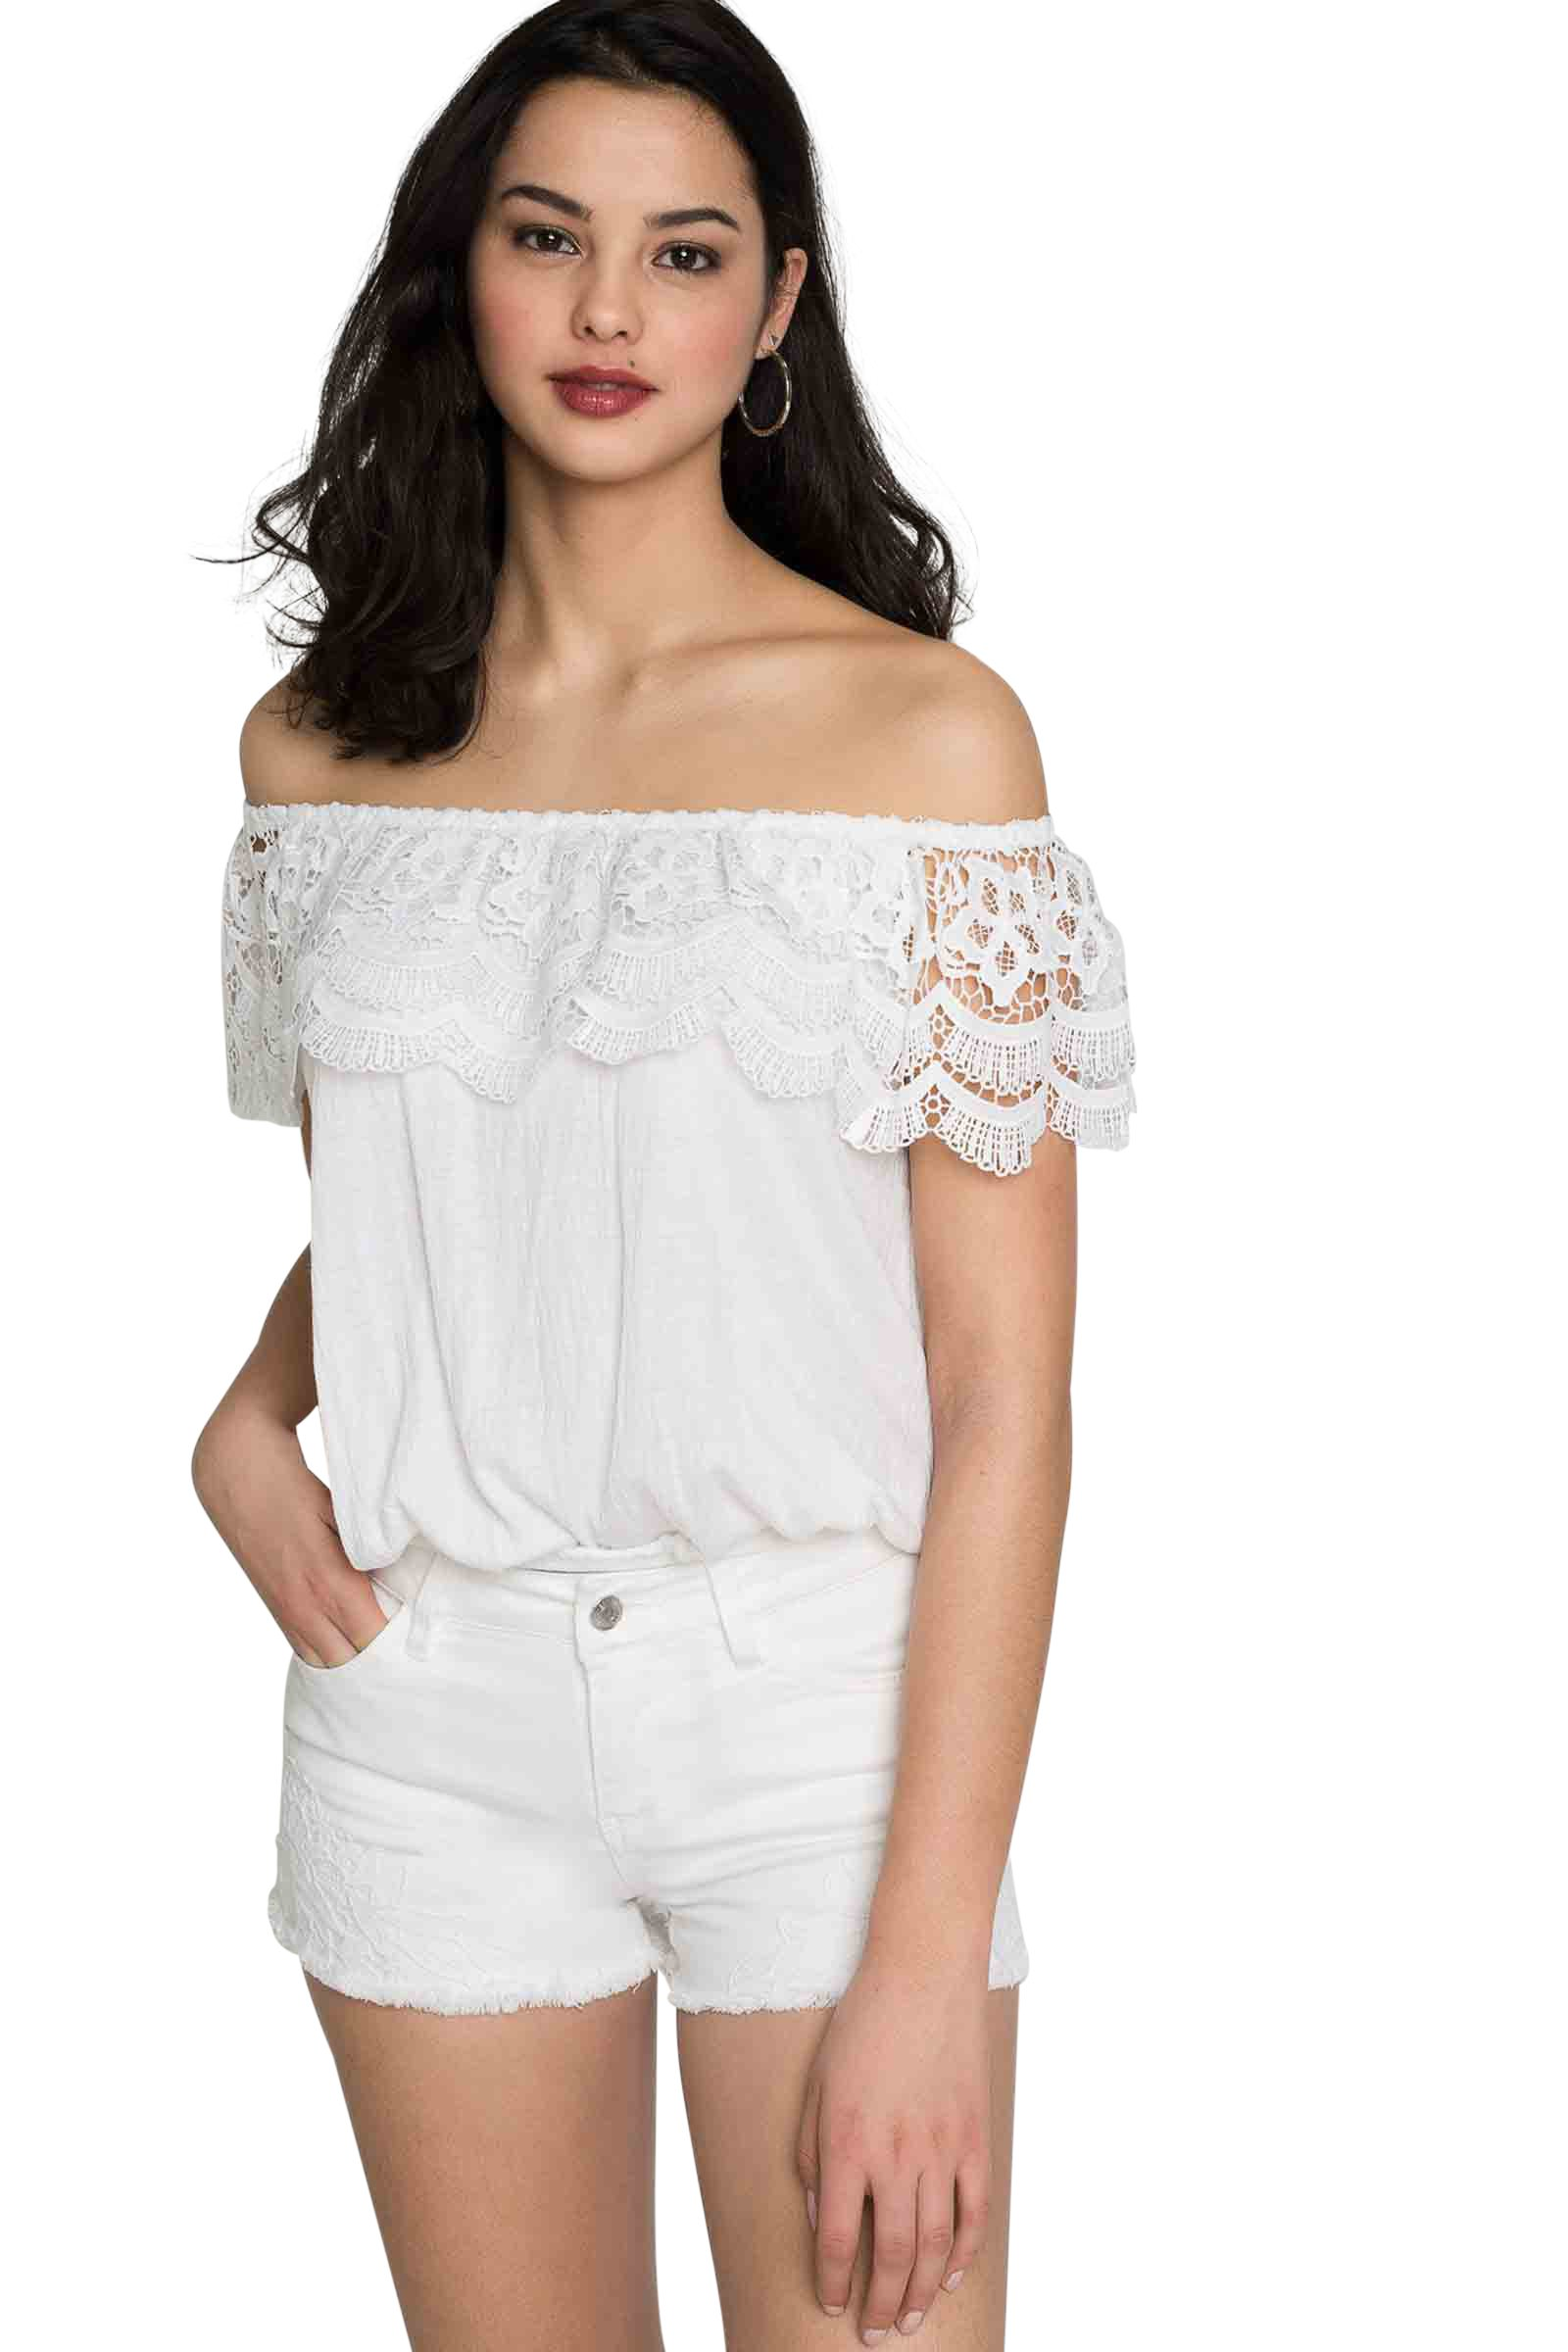 63d8bde868db9 Ardene - Women s - Shirts   Blouses - Lace Off Shoulder Top Large  -(8A-AP03878)